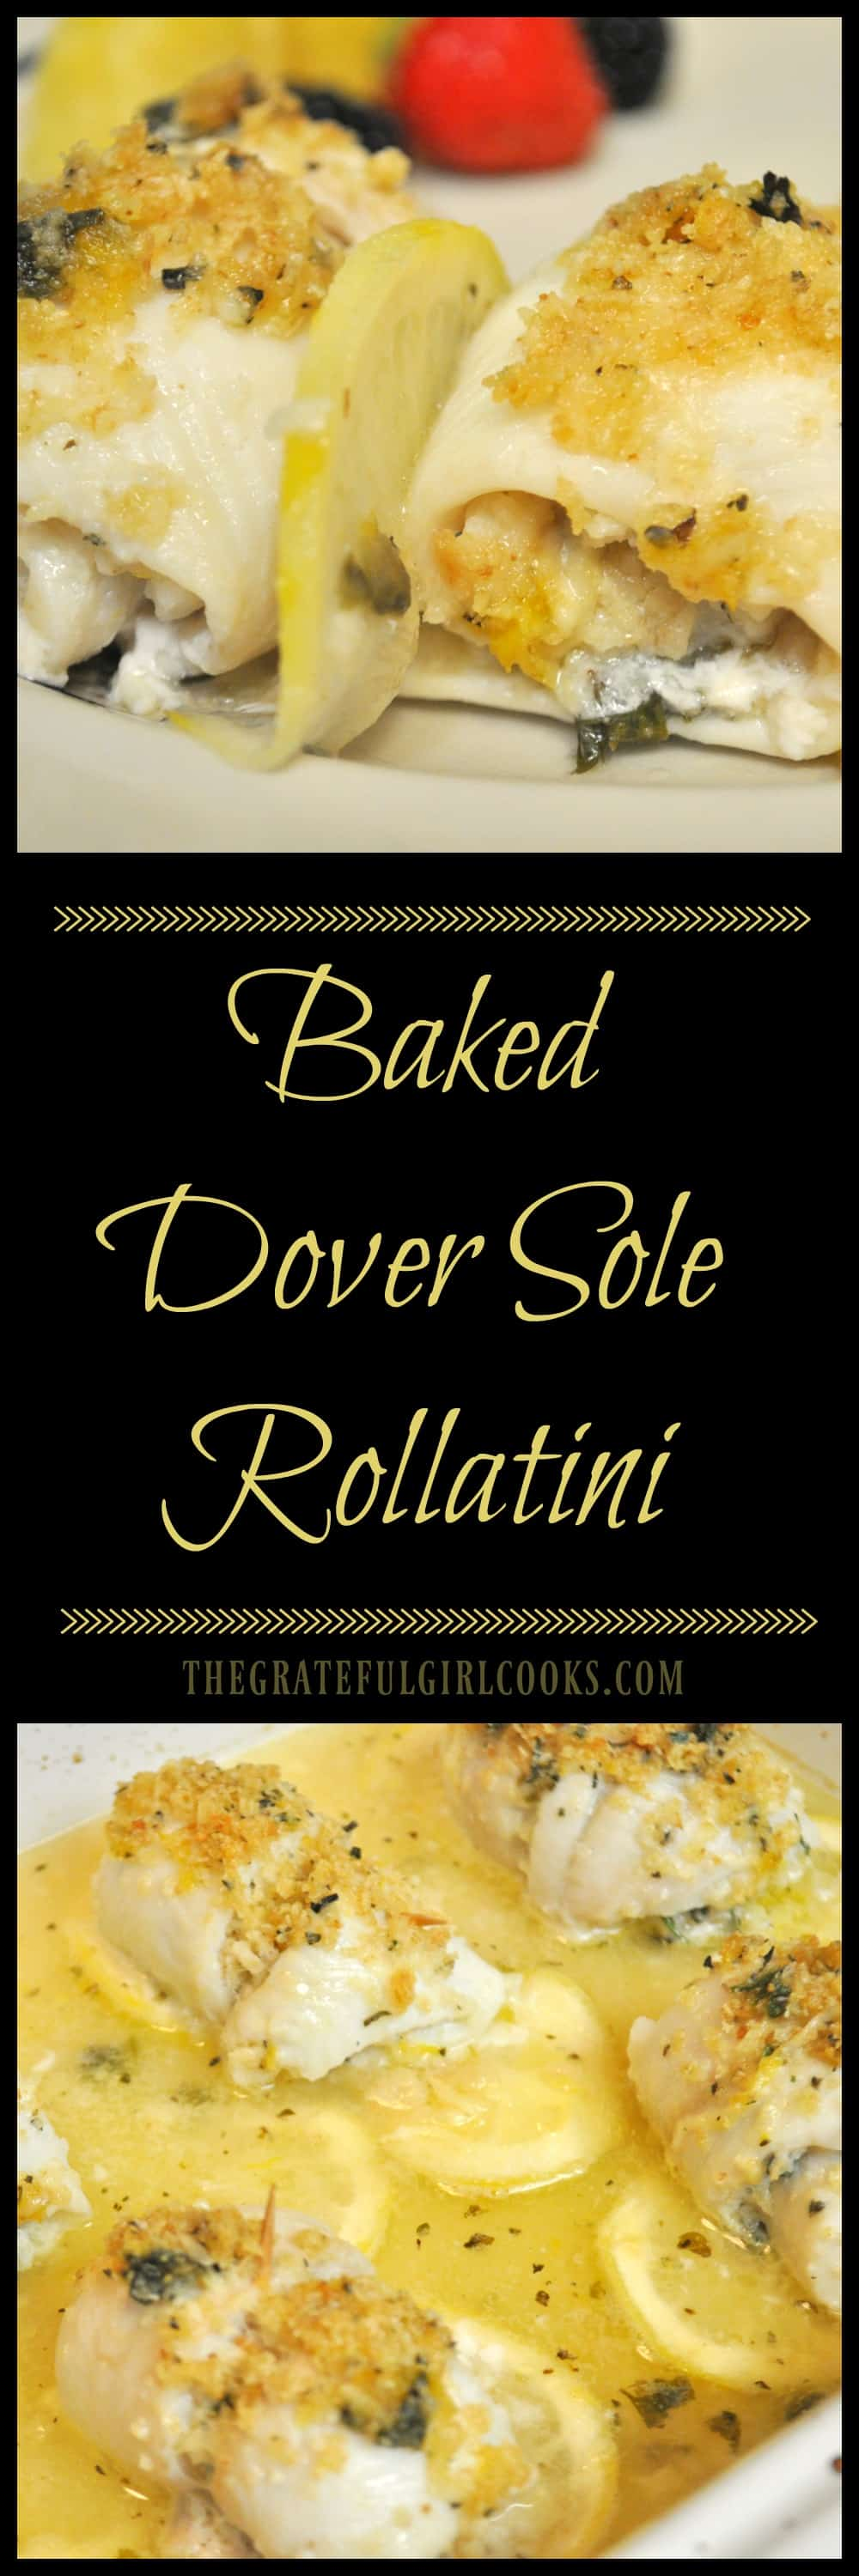 Baked Dover Sole Rollatini / The Grateful Girl Cooks! Dover Sole fillets, Italian seasoned breadcrumbs, Parmigiano cheese, rolled & baked w/ lemon-wine sauce!